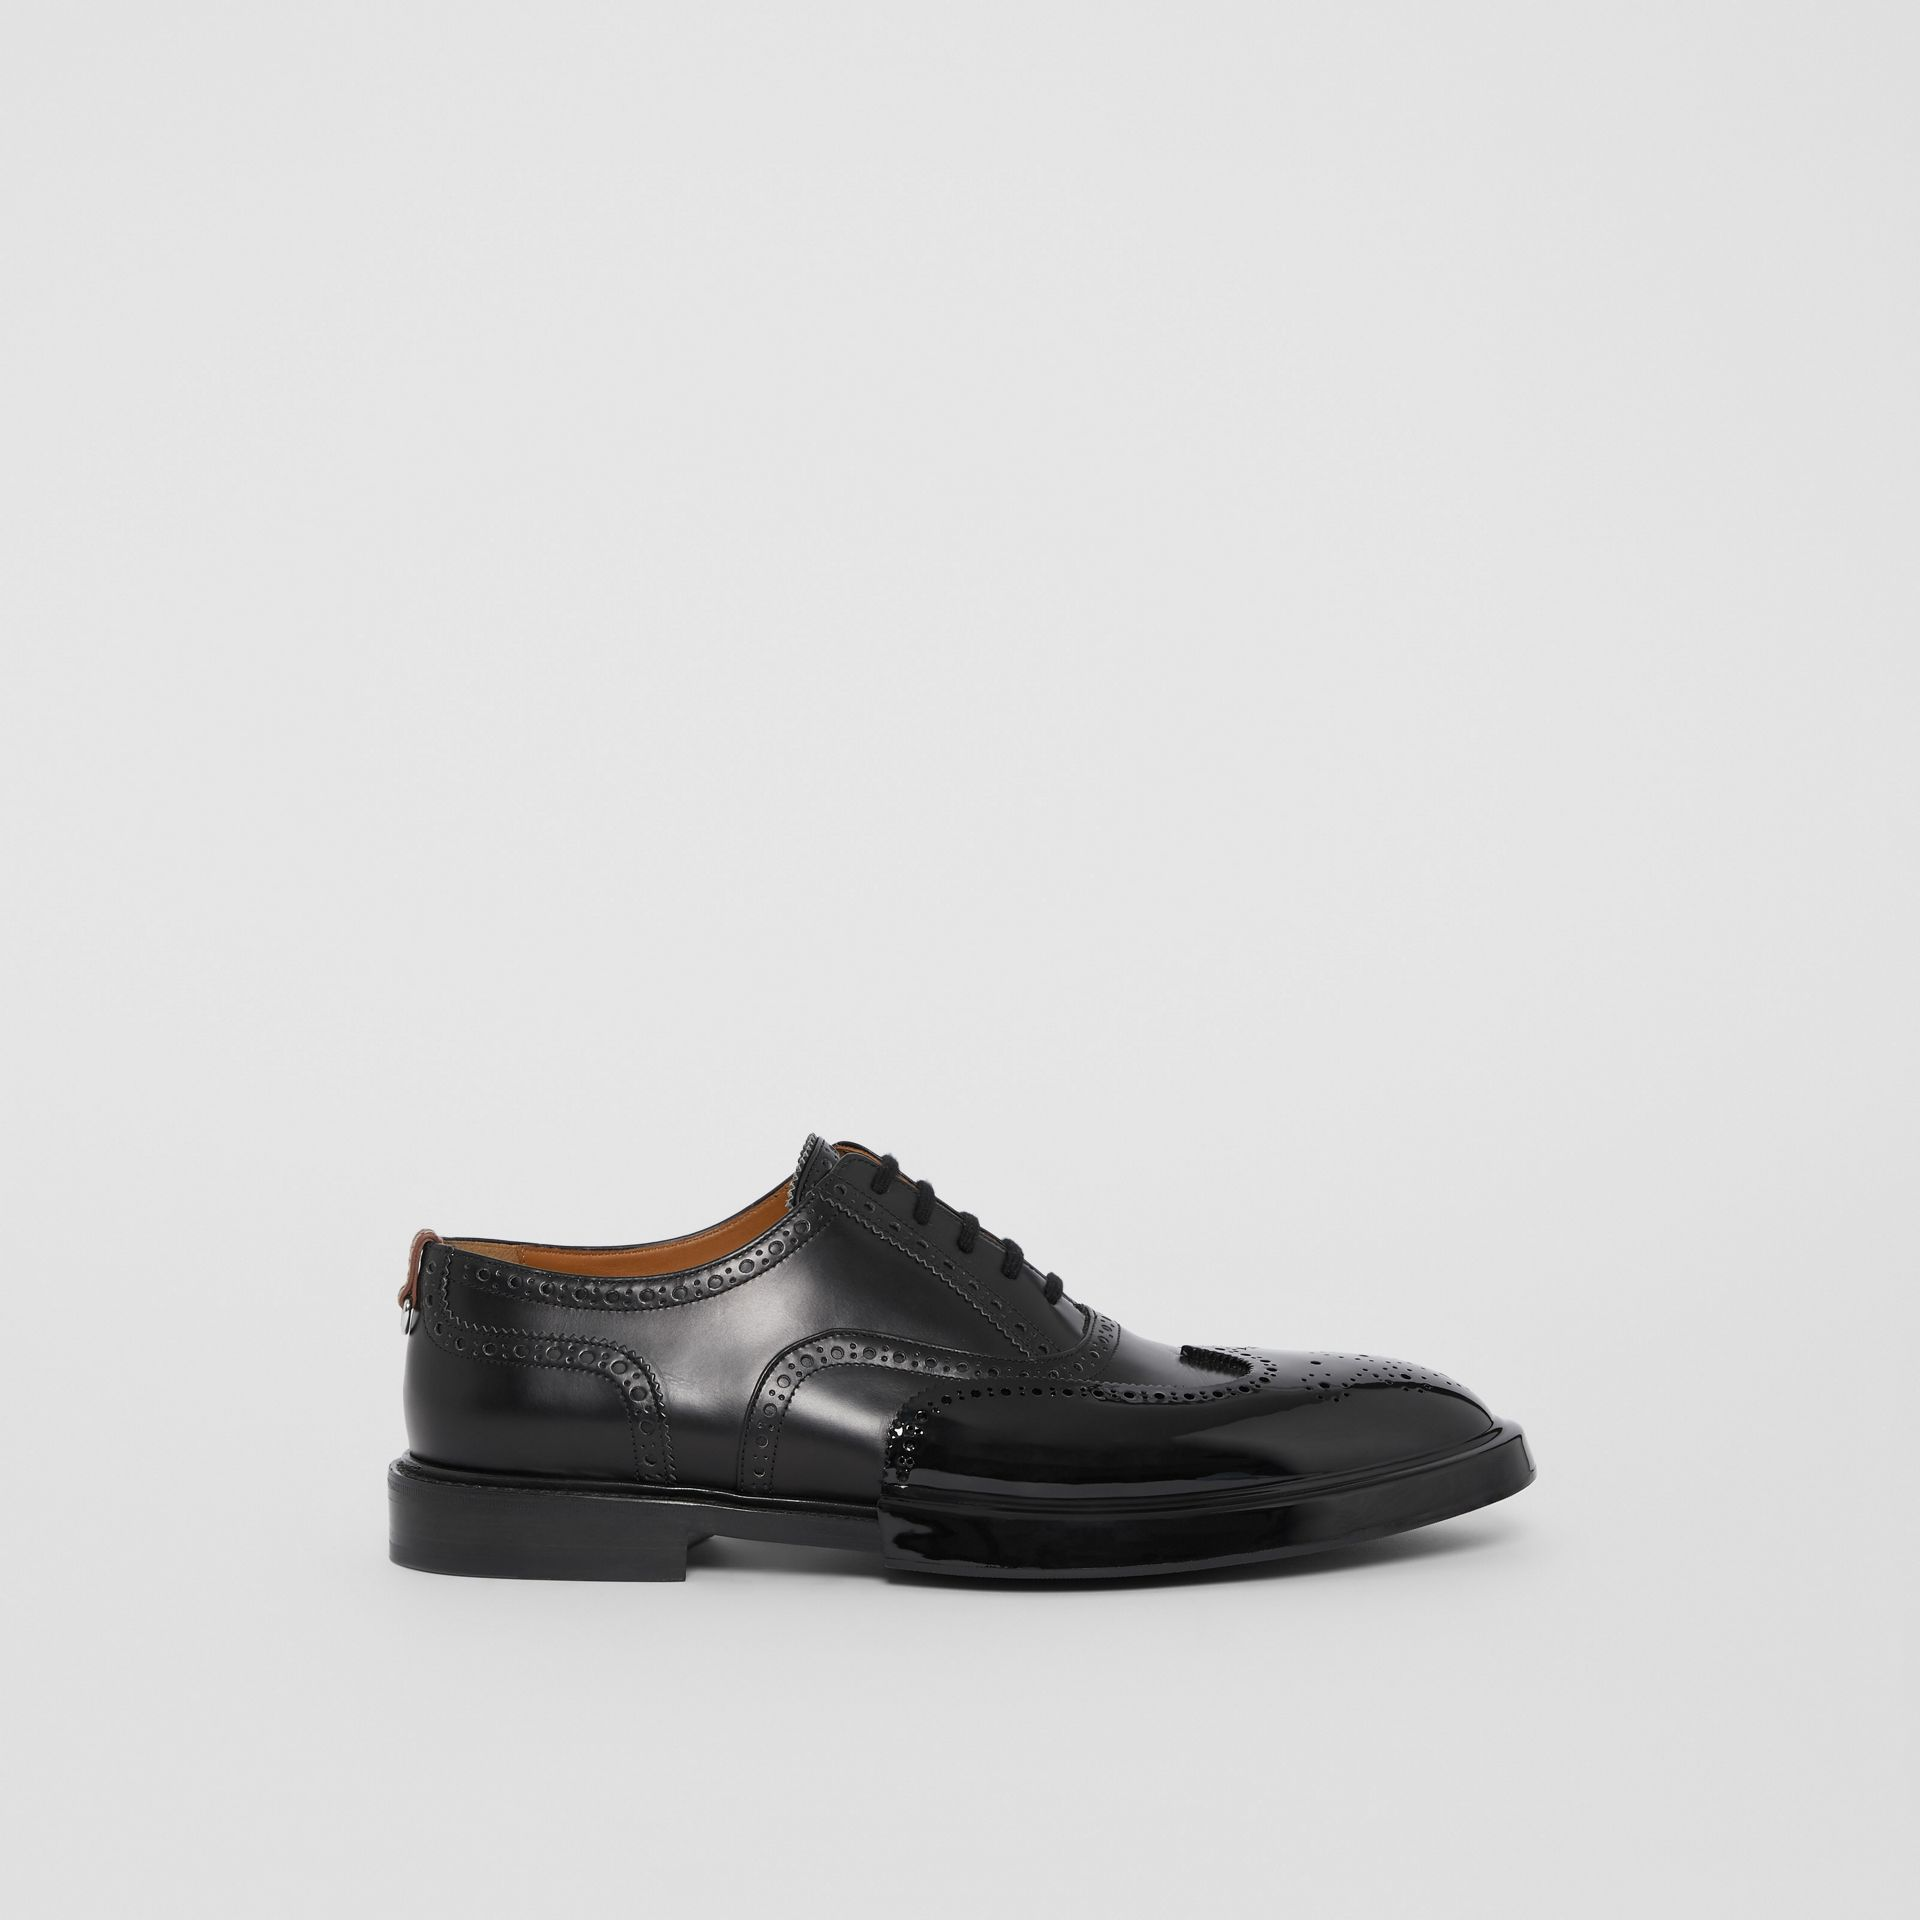 Toe Cap Detail Leather Oxford Brogues in Black - Men | Burberry - gallery image 5